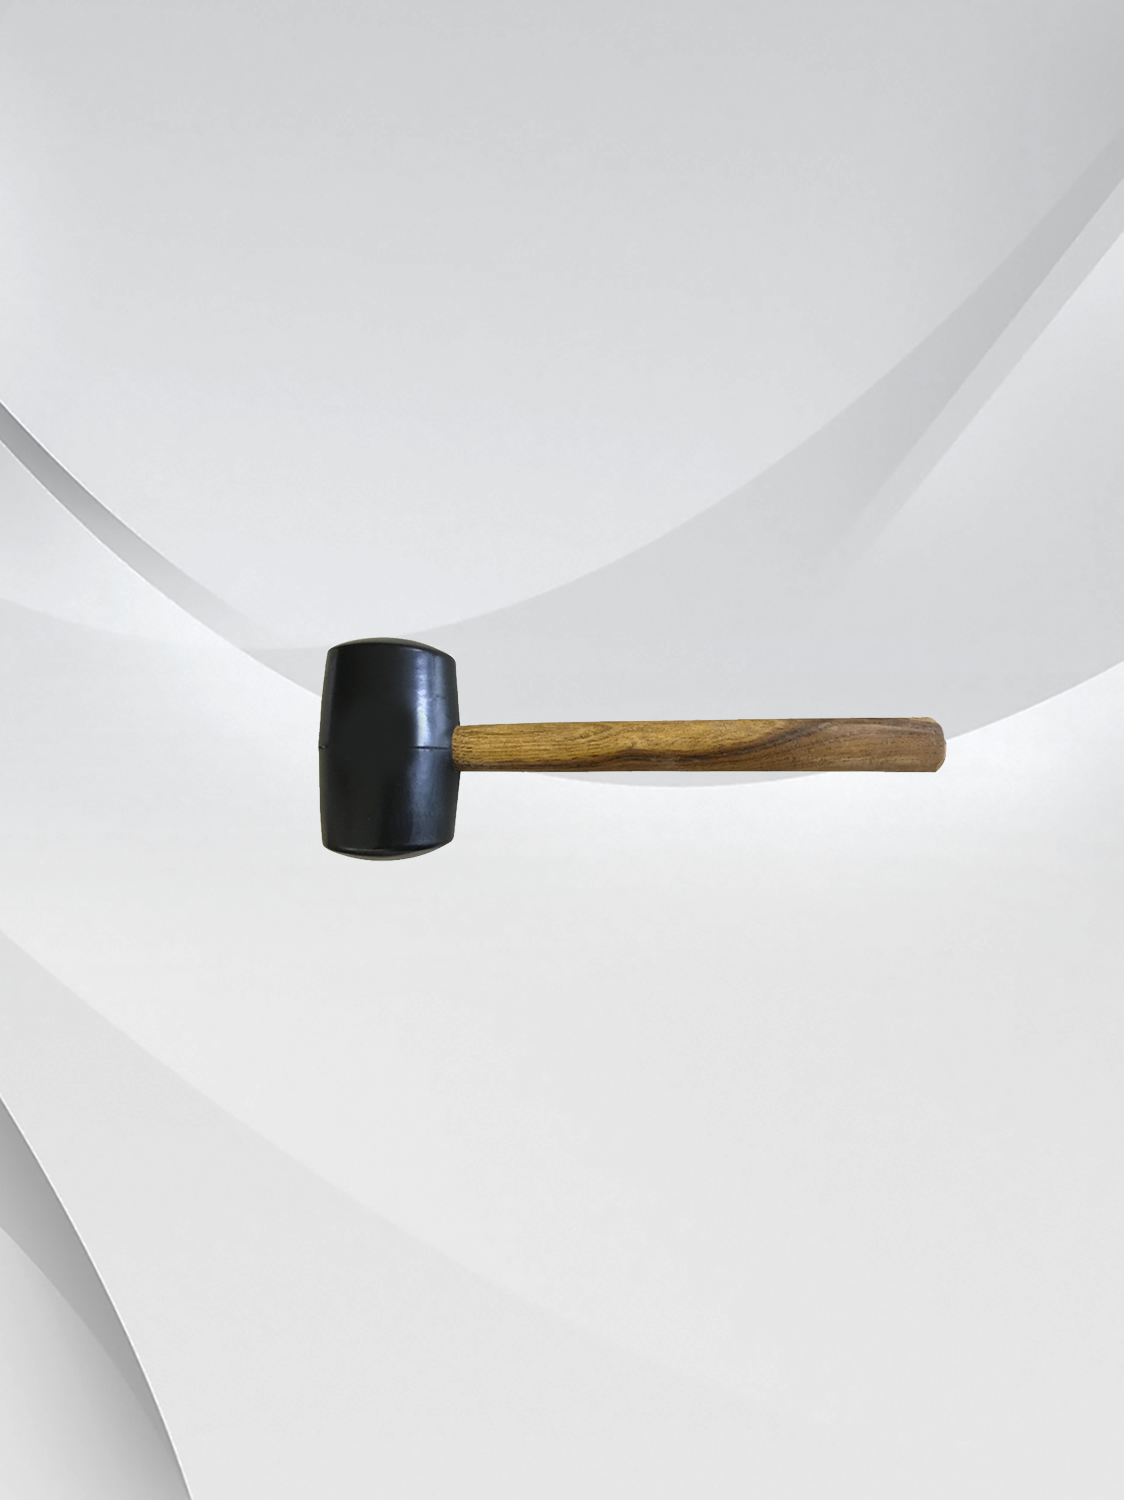 Mallet For Hand Tools